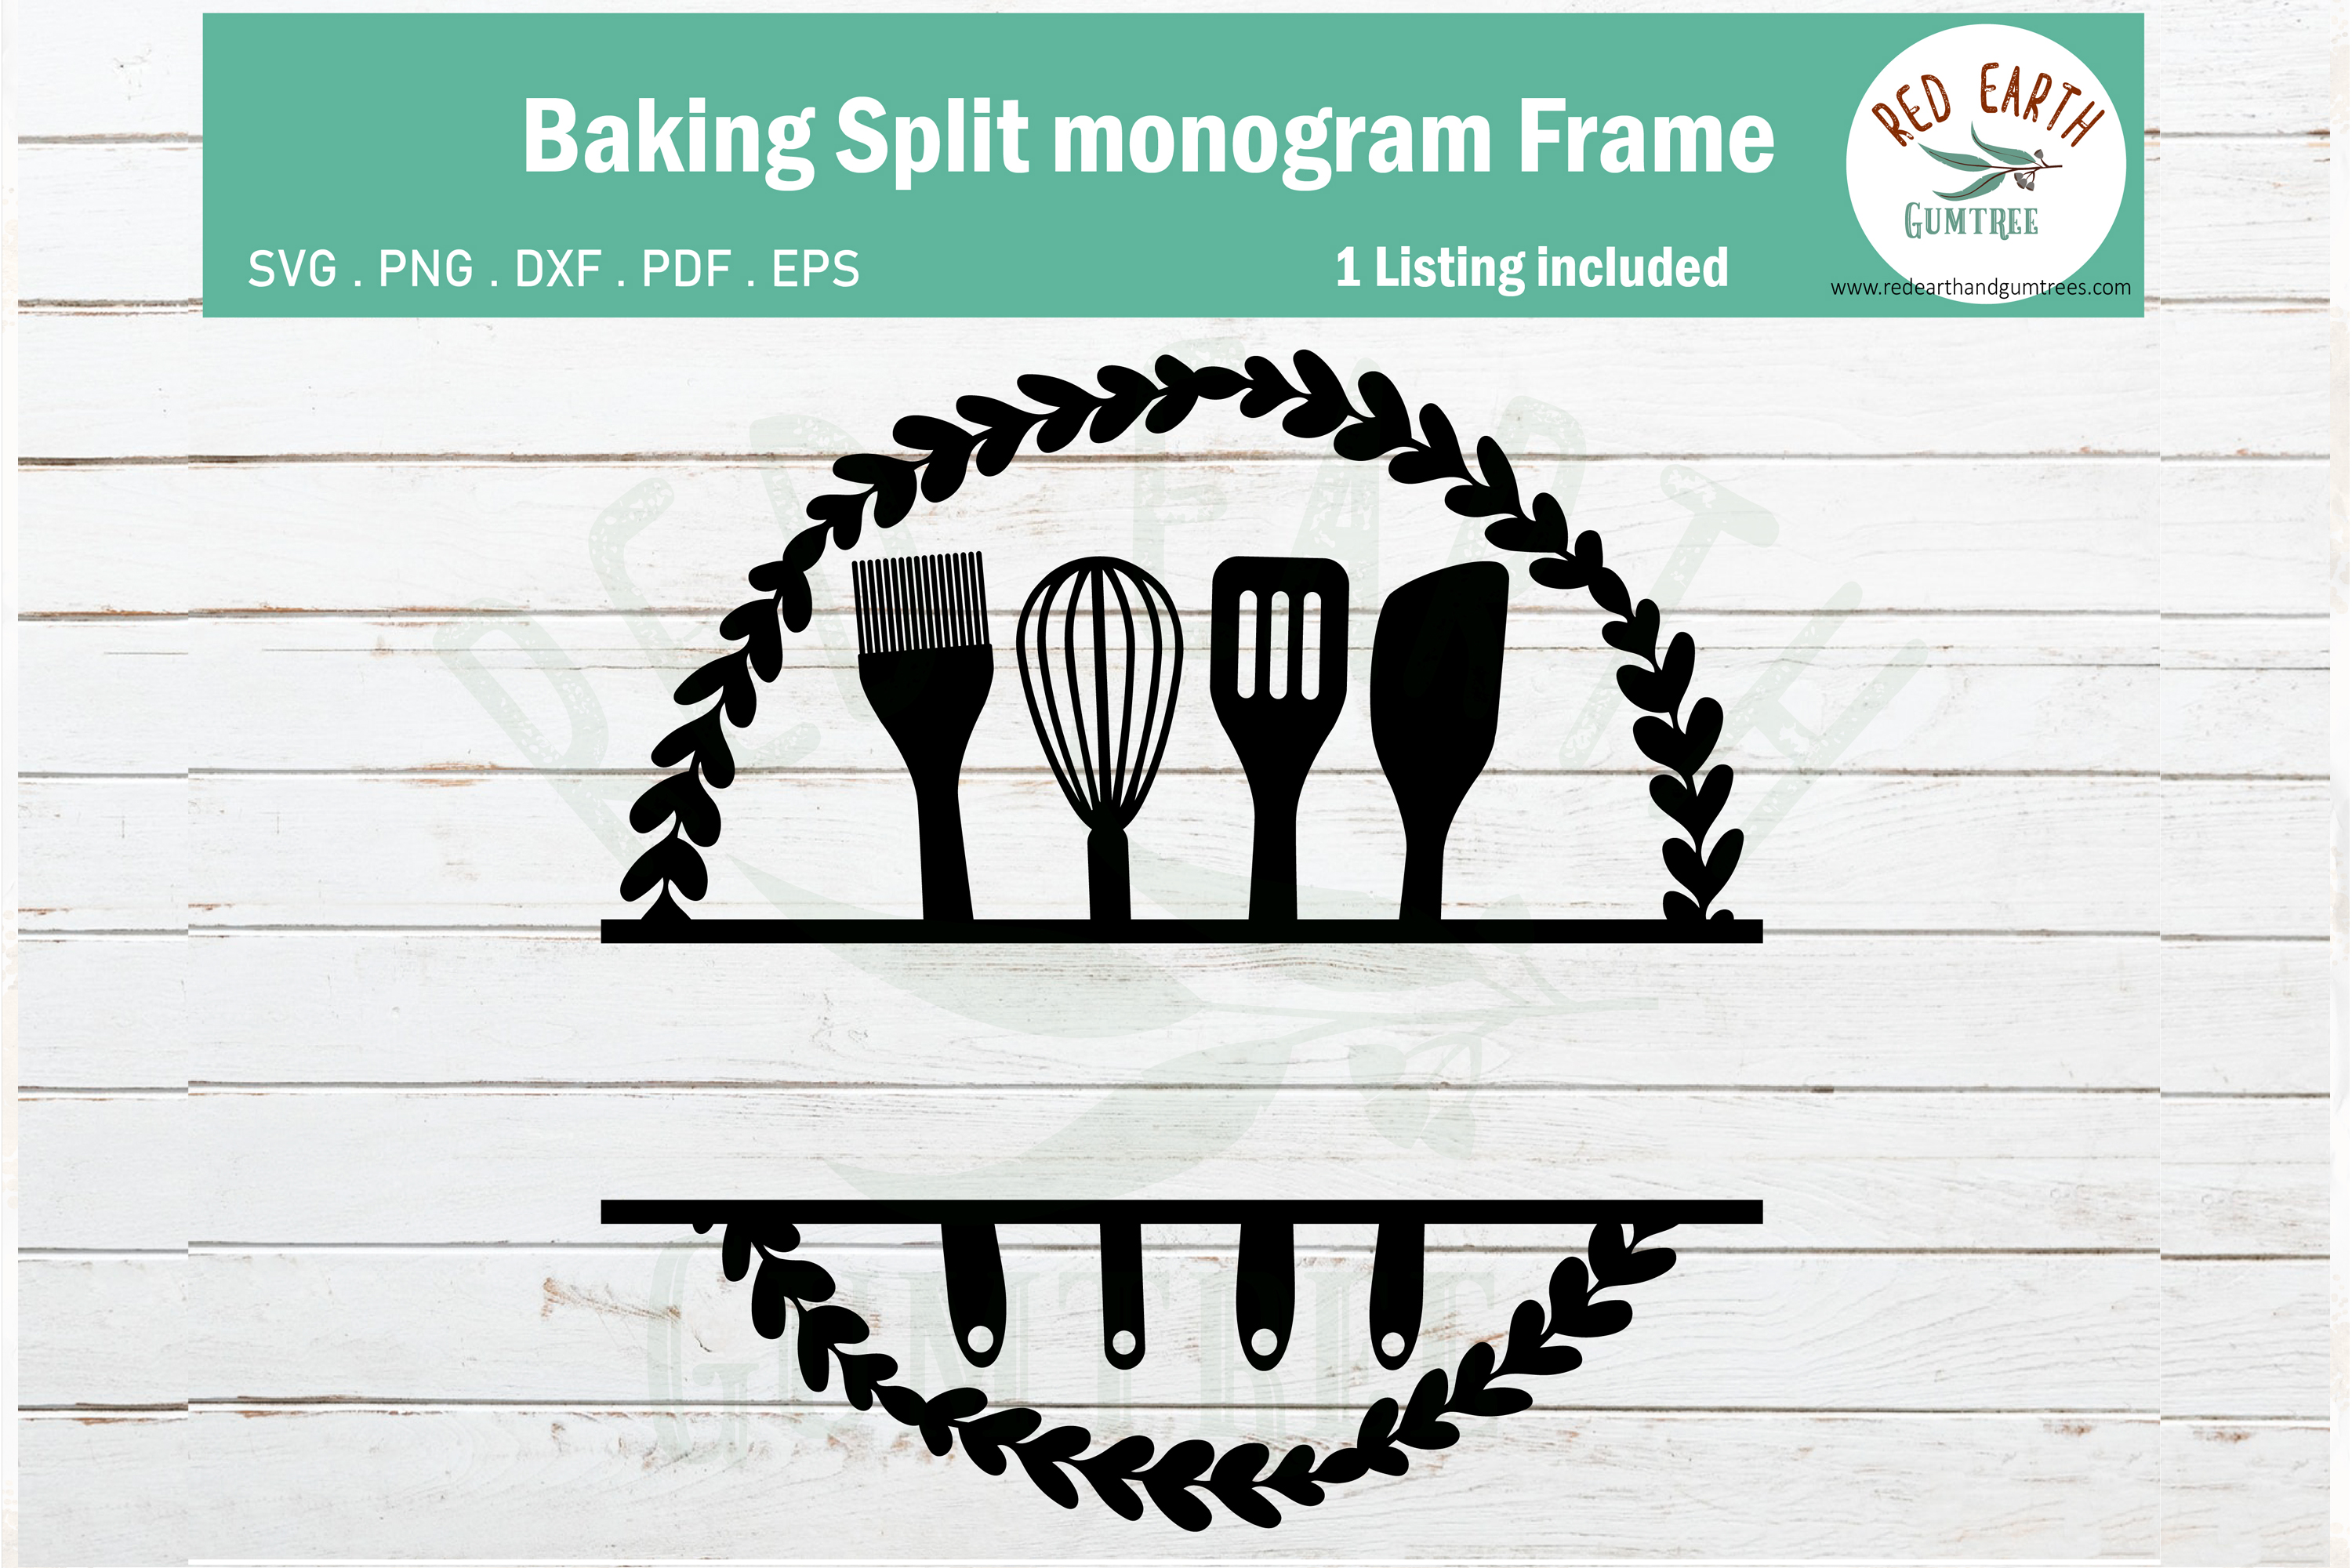 Baking Split Monogram Frame Svg Kitchen Graphic By Redearth And